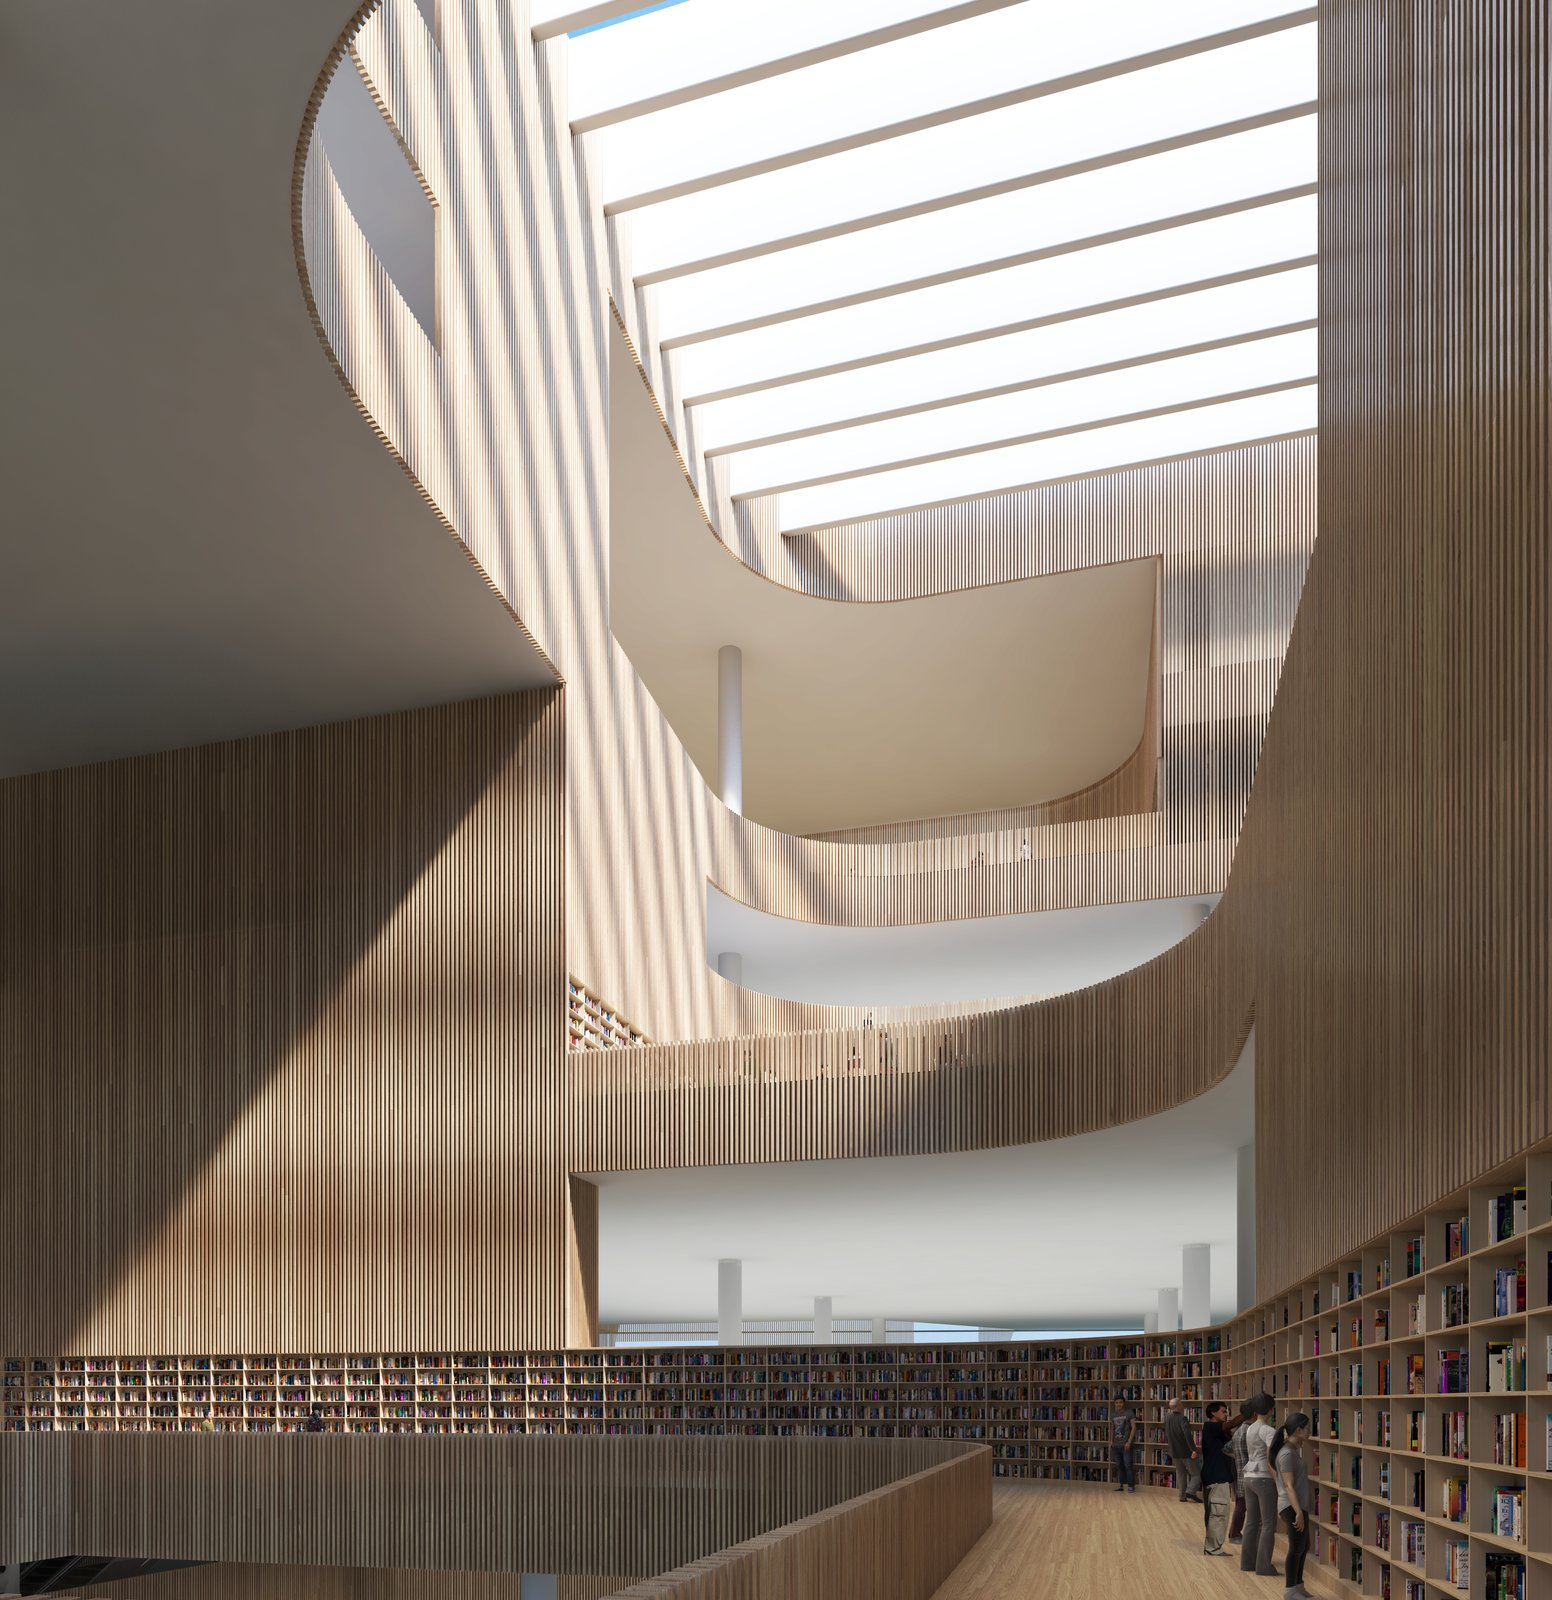 The wooden slats that line the central atrium are of varying transparency: